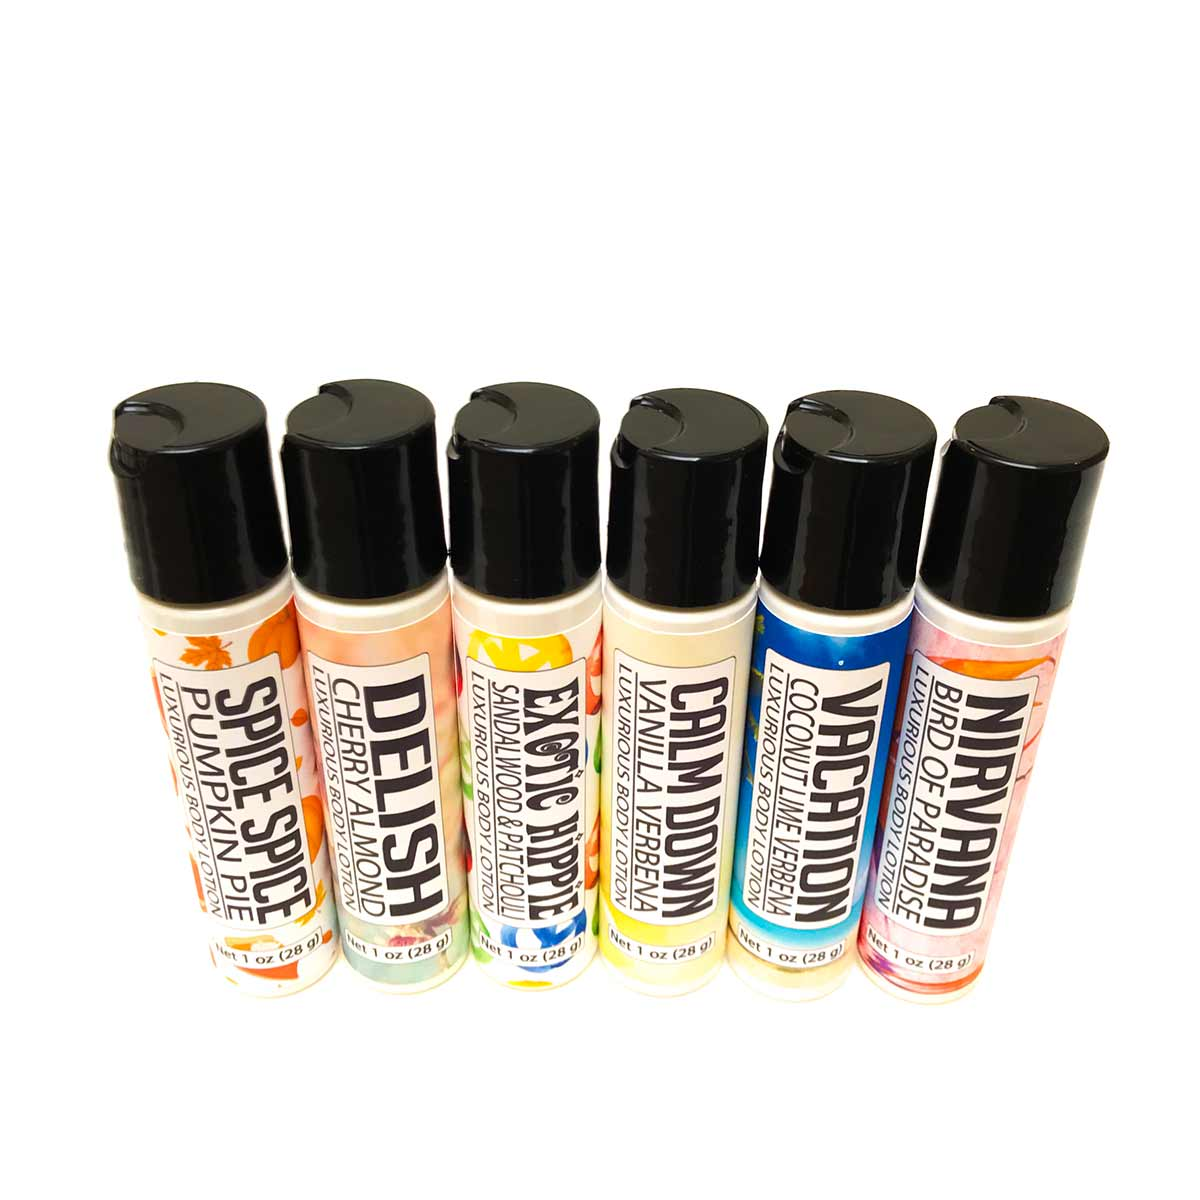 Variety lotion packs 2, 4 or 6 pack choices